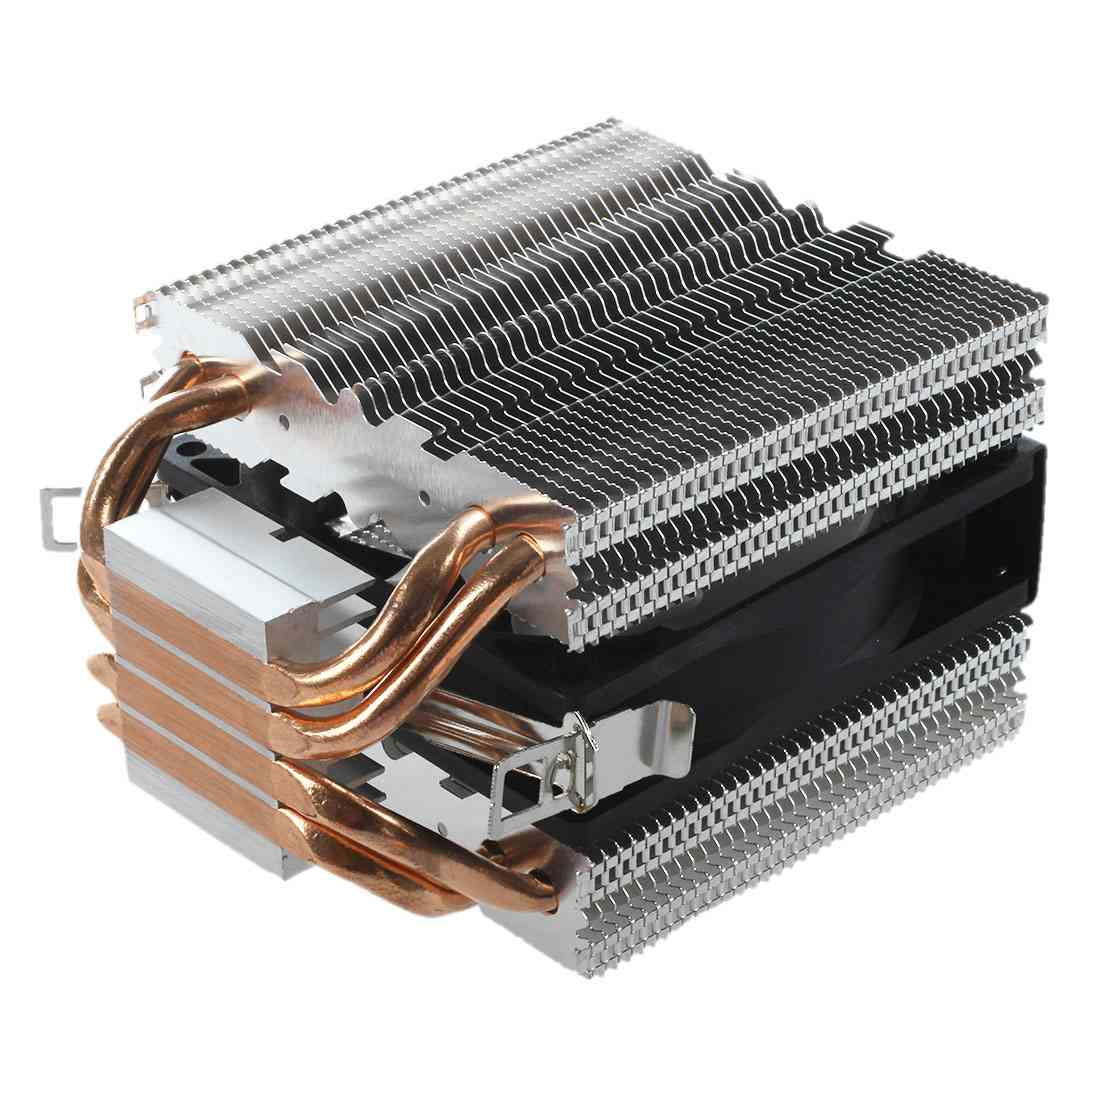 4 Heatpipe CPU Cooler Heat Sink for Intel LGA 1150 1151 1155 775 1156 New synthetic graphite cooling film paste 300mm 300mm 0 025mm high thermal conductivity heat sink flat cpu phone led memory router